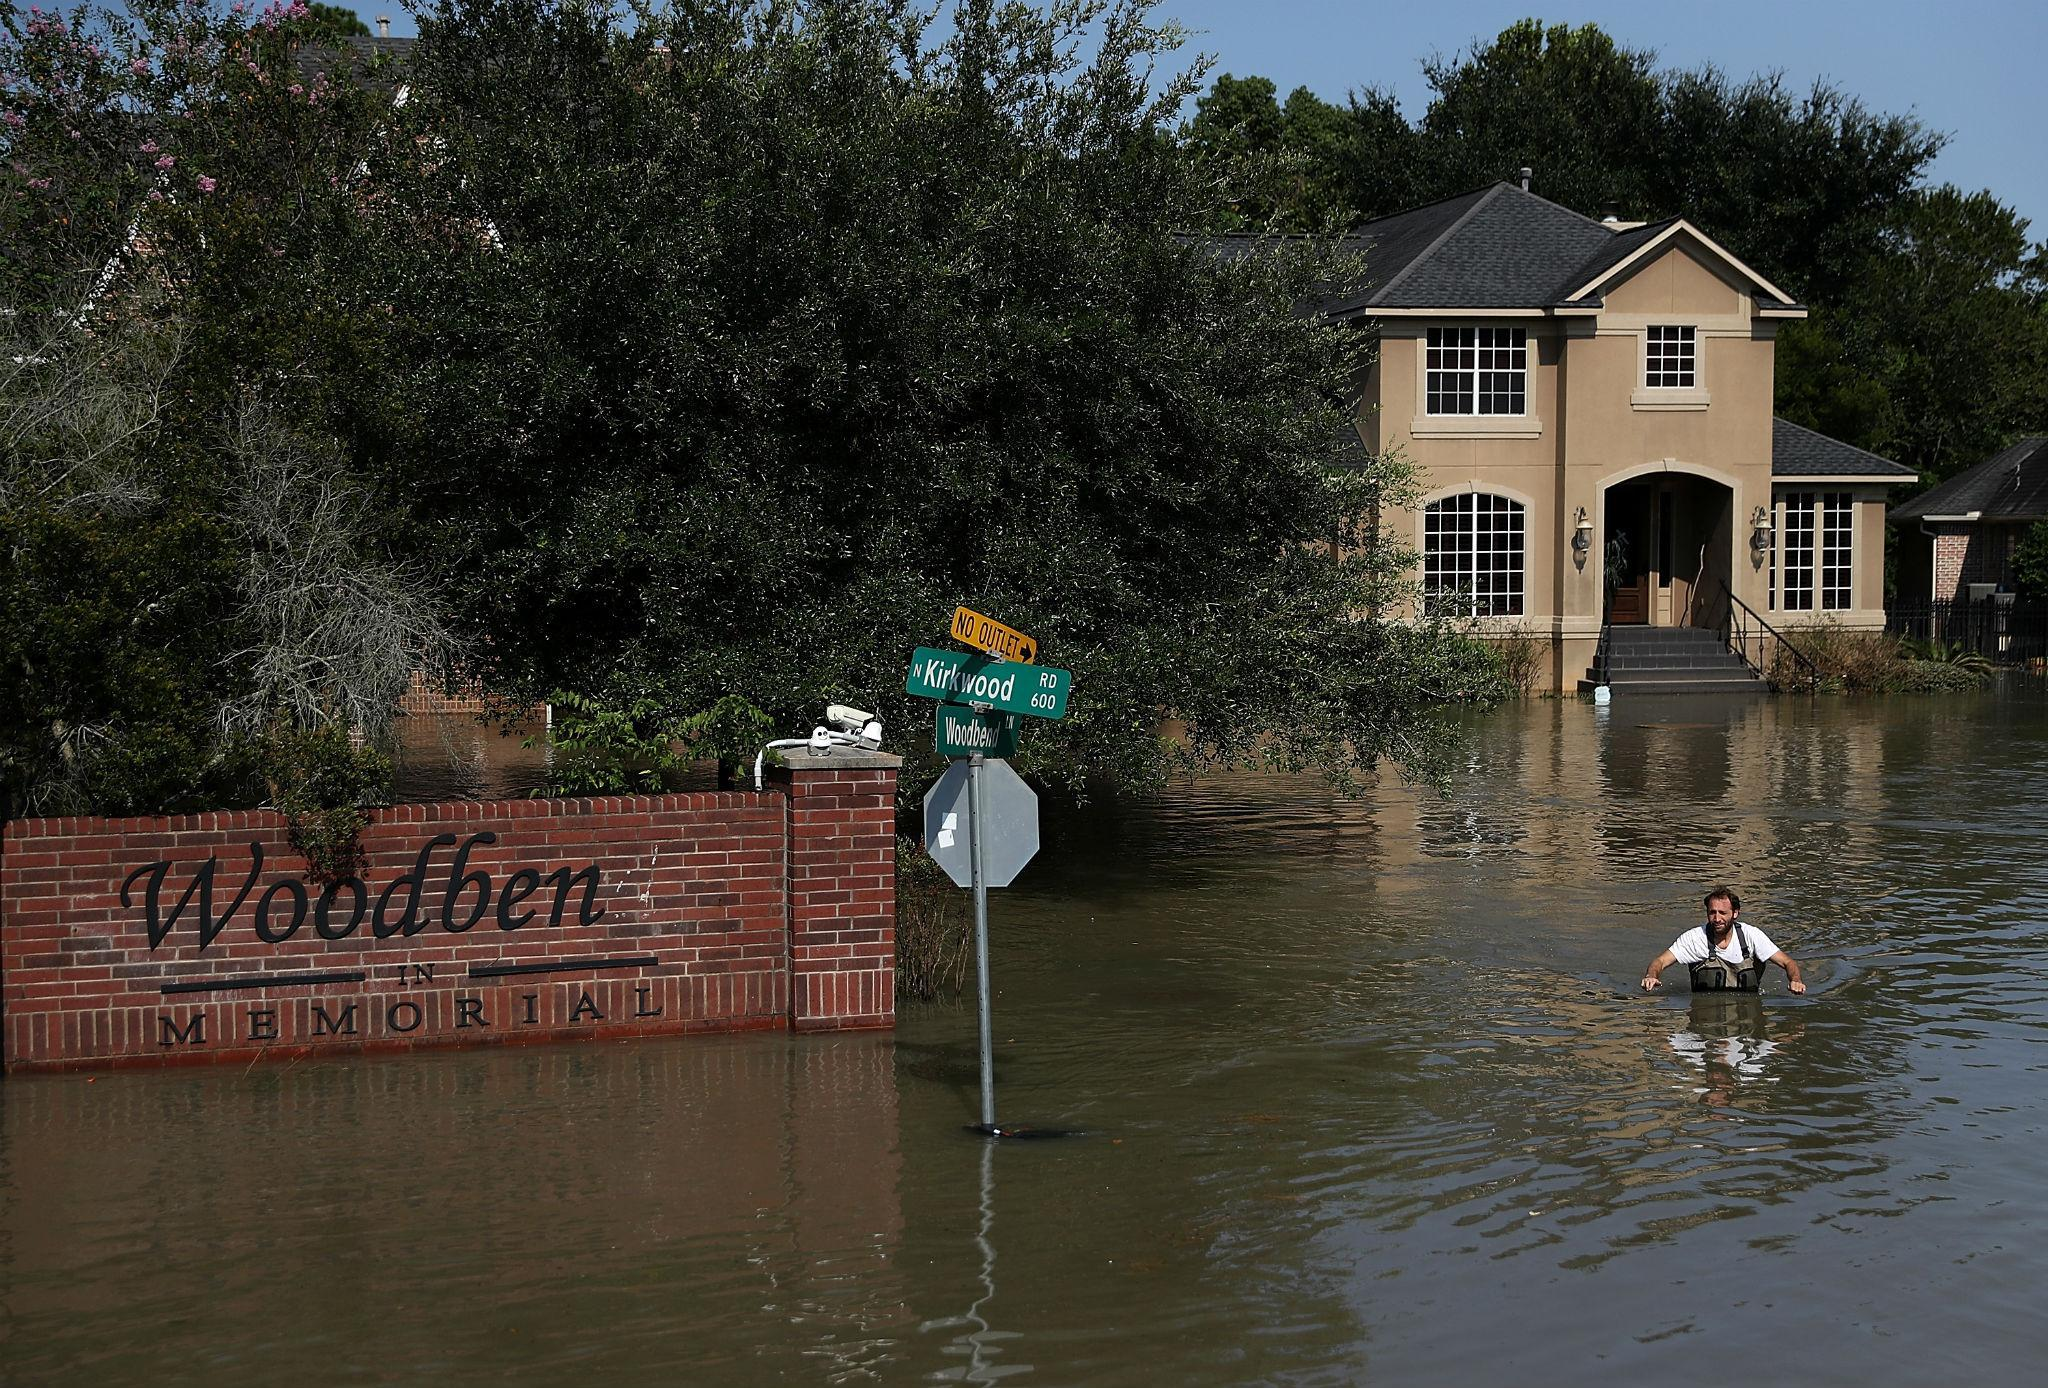 Natural disaster damage cost America $306 billion in 2017